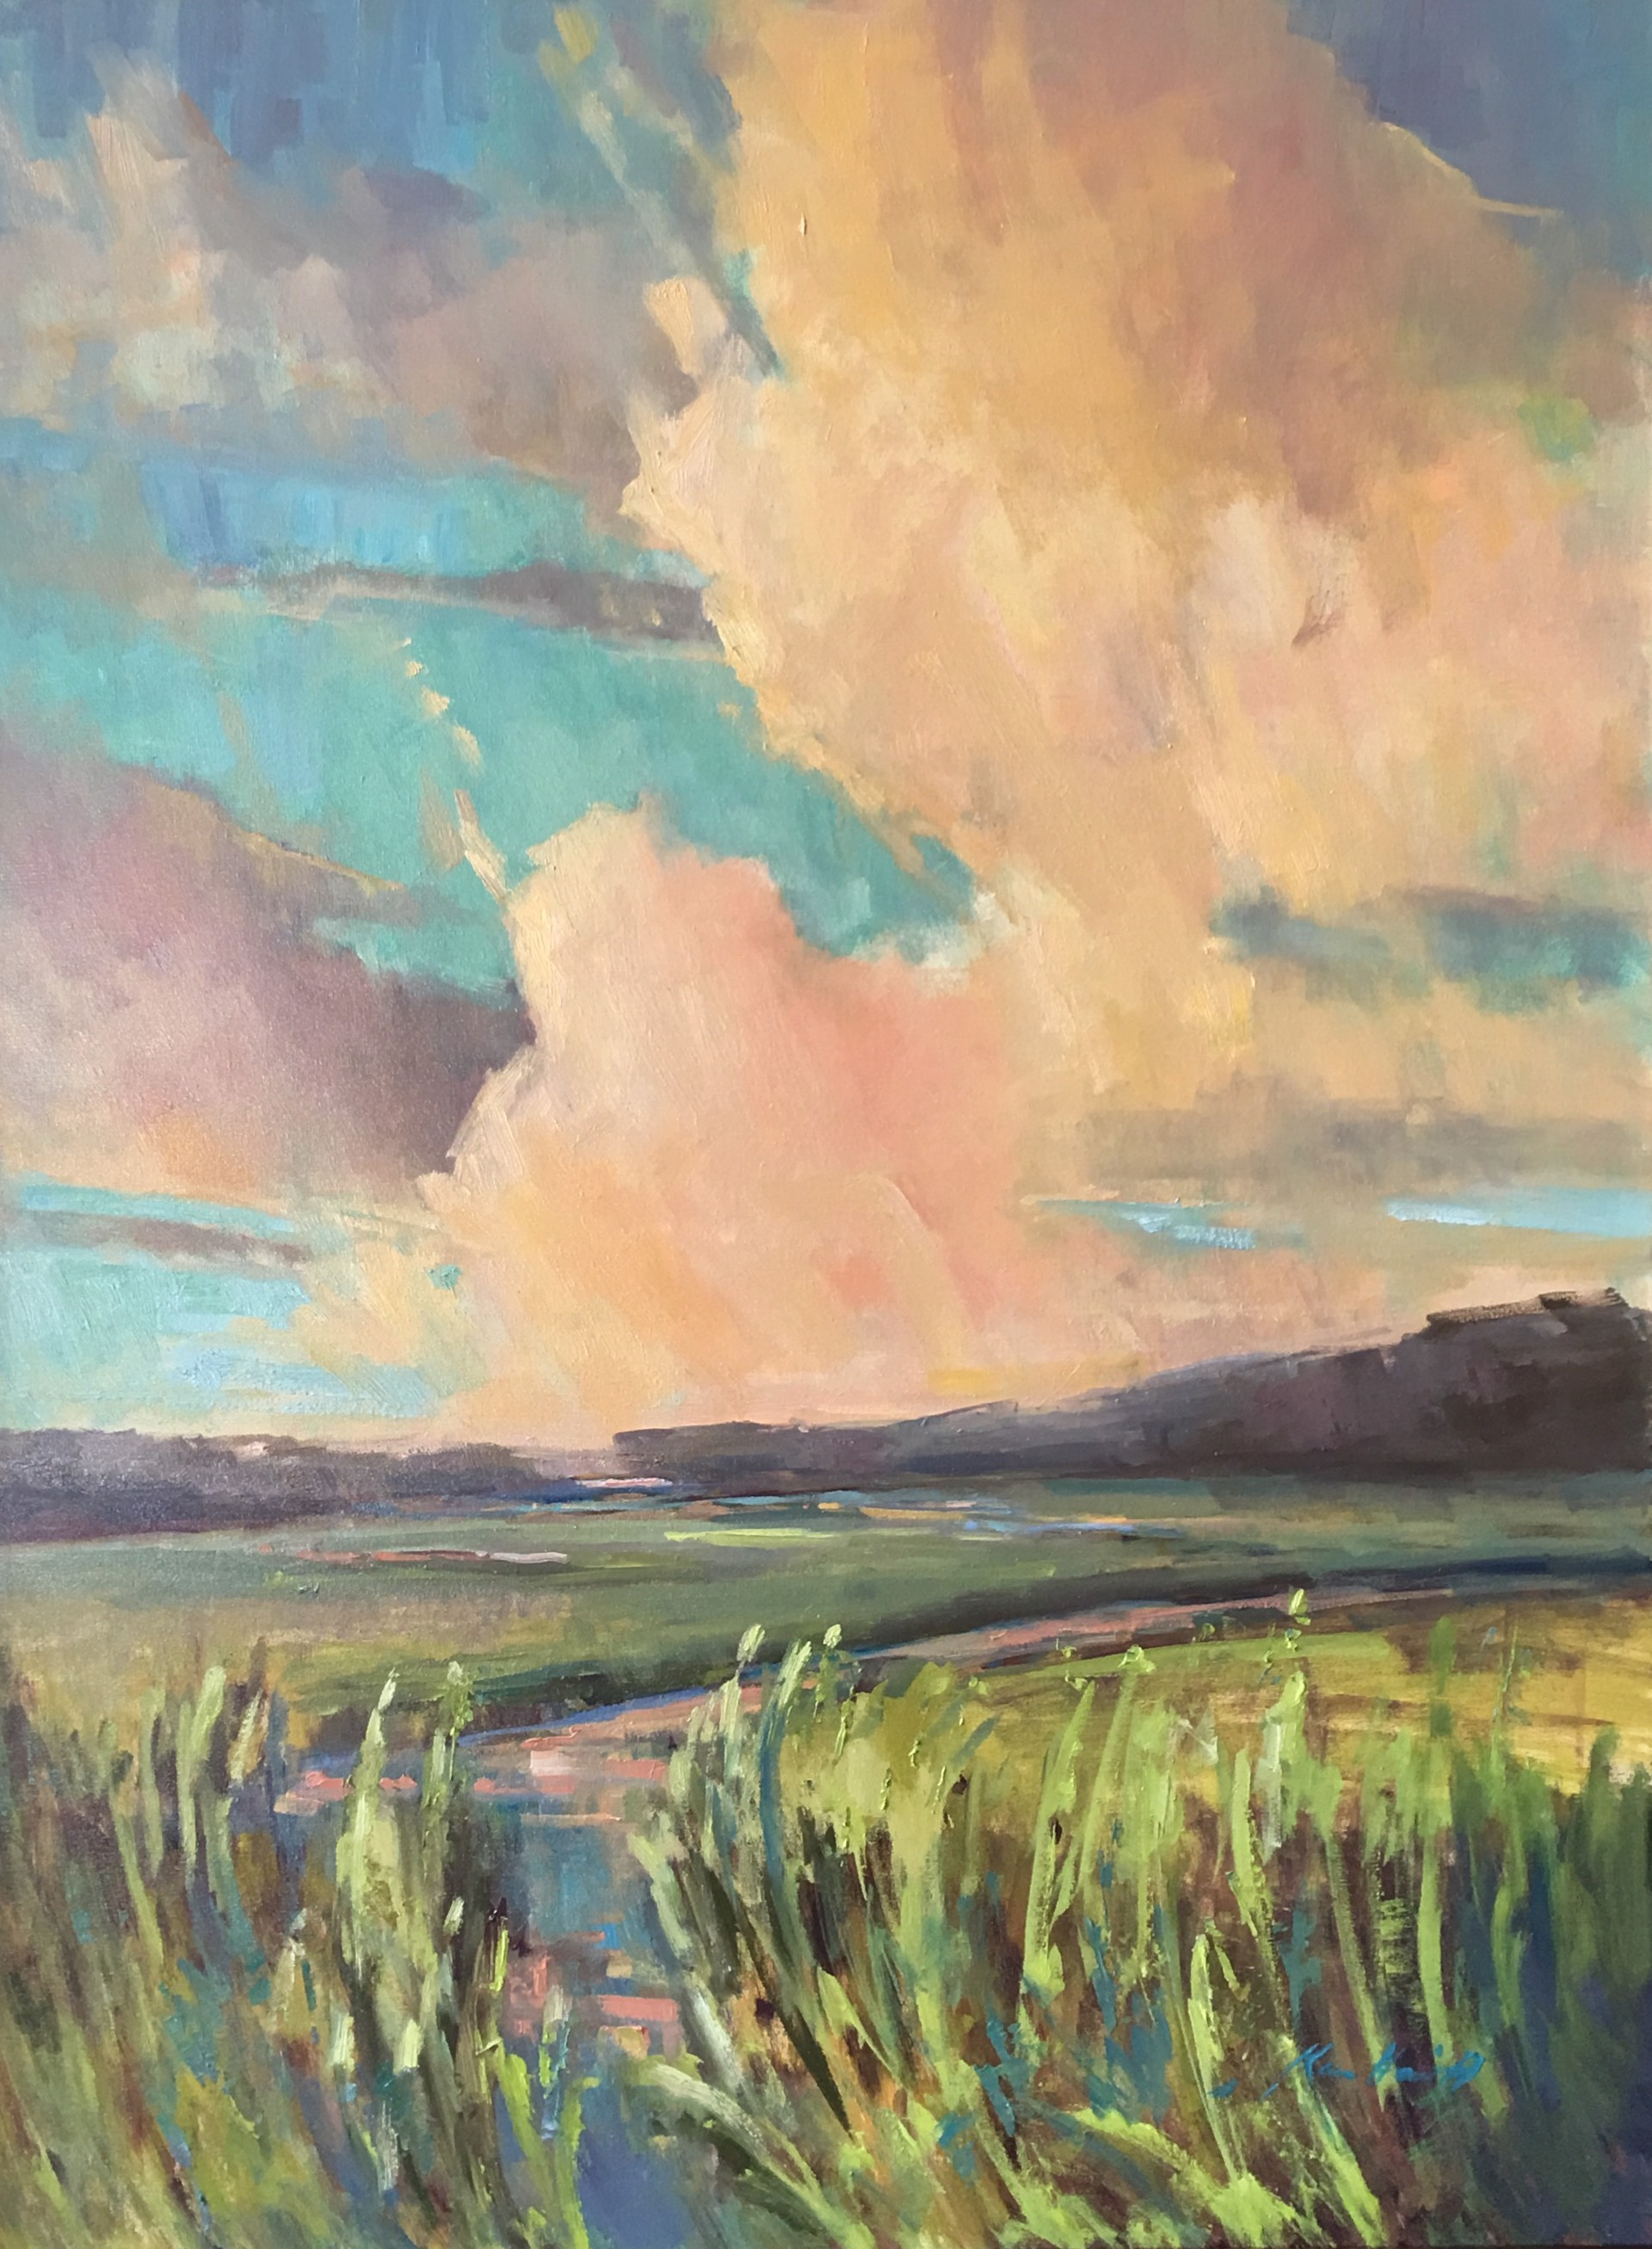 Lowcountry Dream by Karen Hewitt Hagan